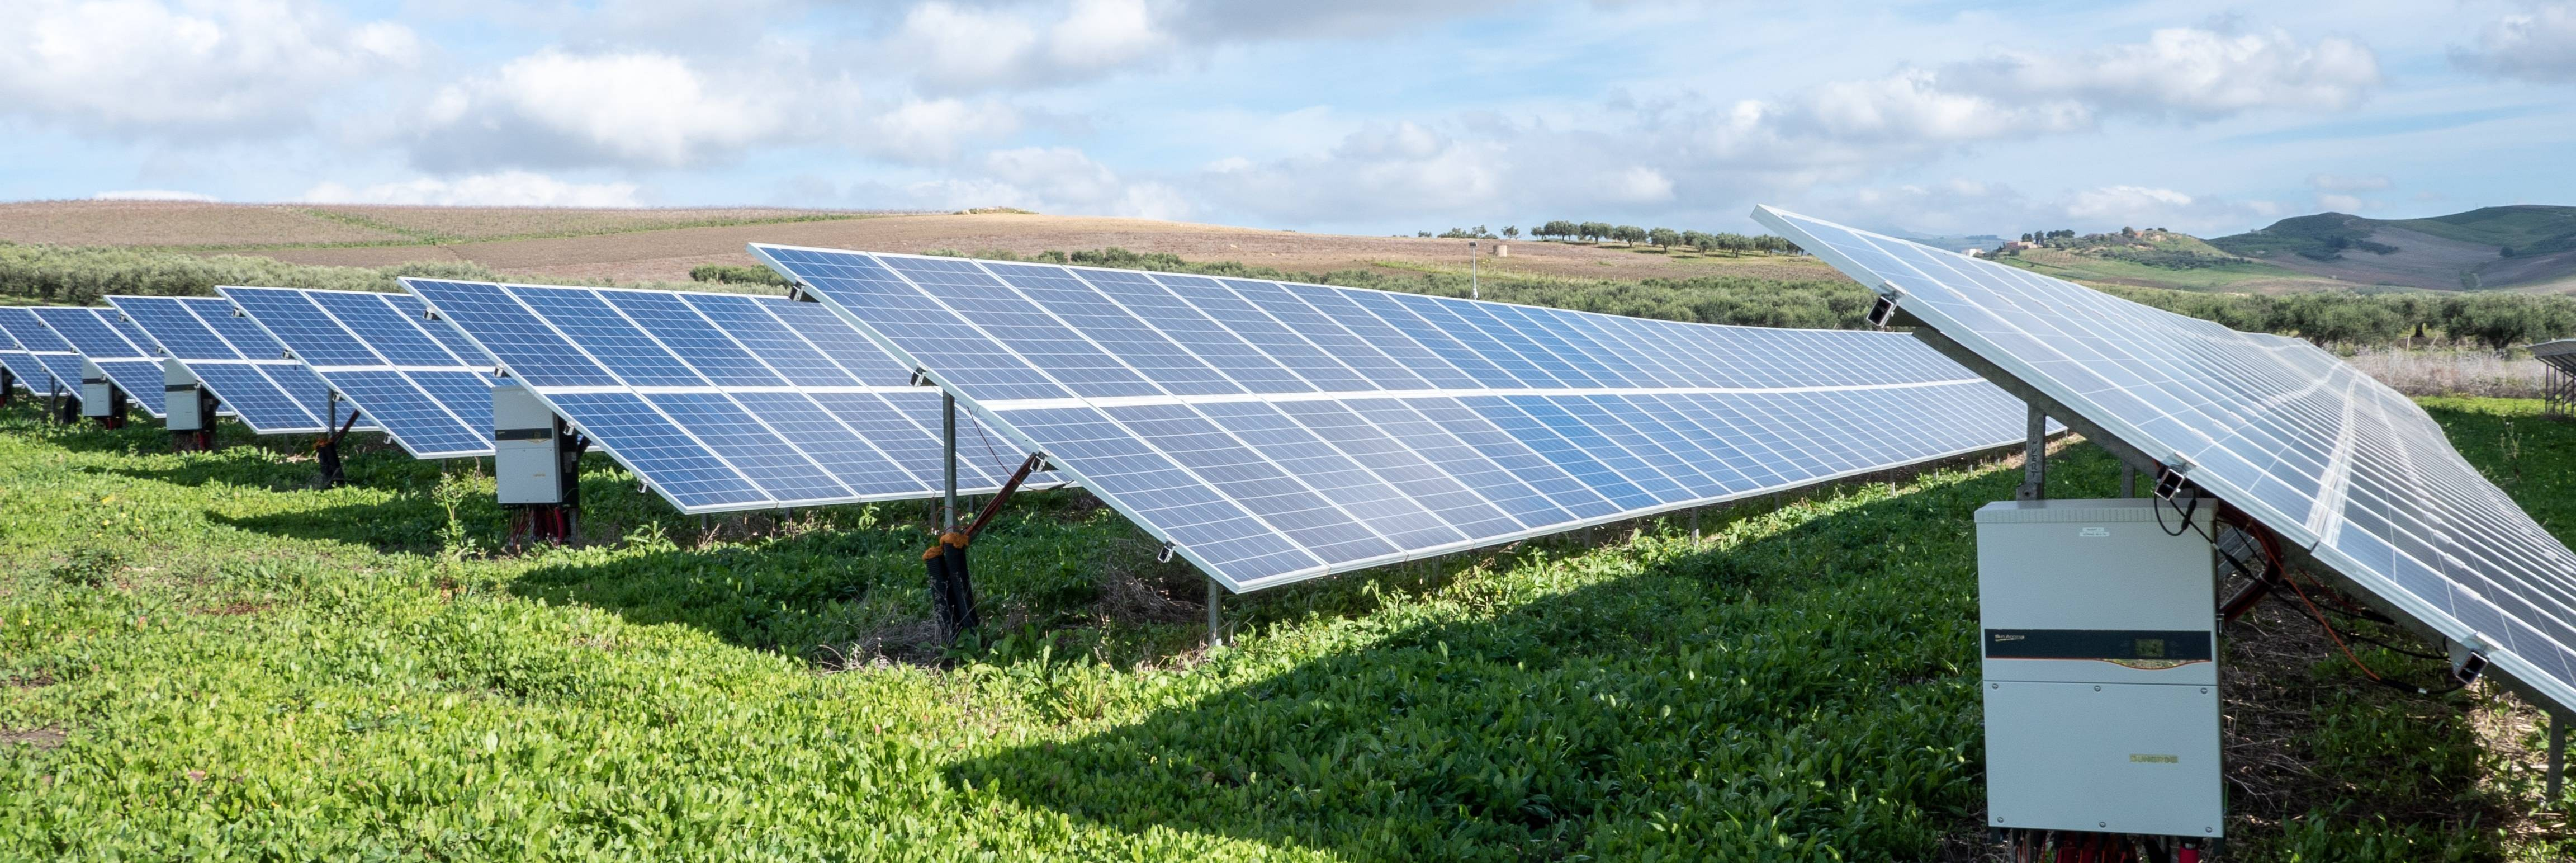 How To Shop for Renewable Electricity in Pennsylvania